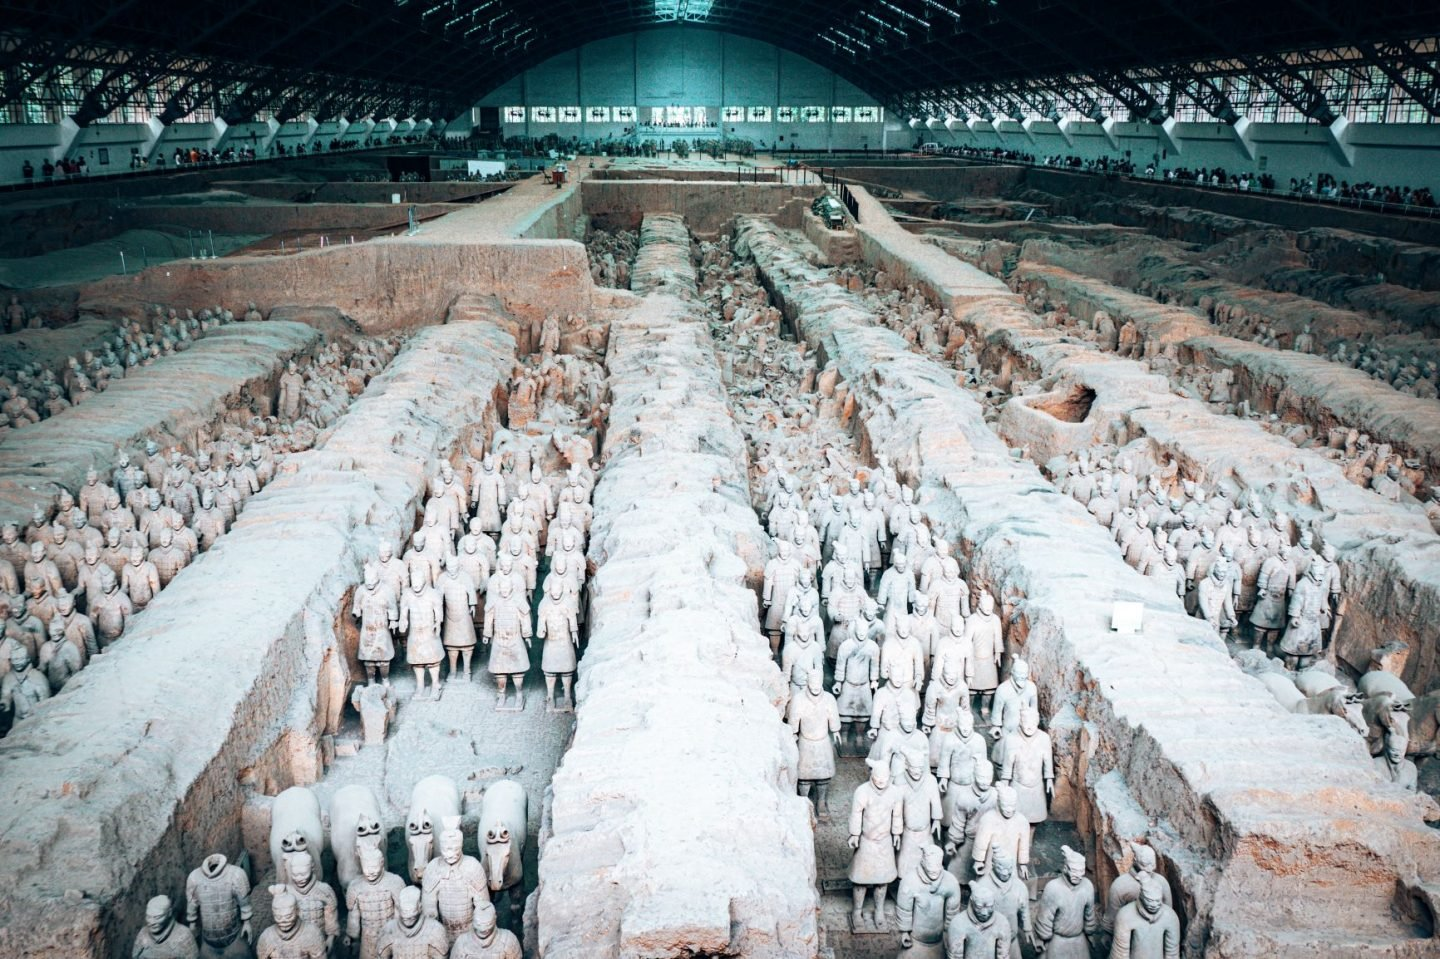 Names of famous landmarks - Terracotta Army